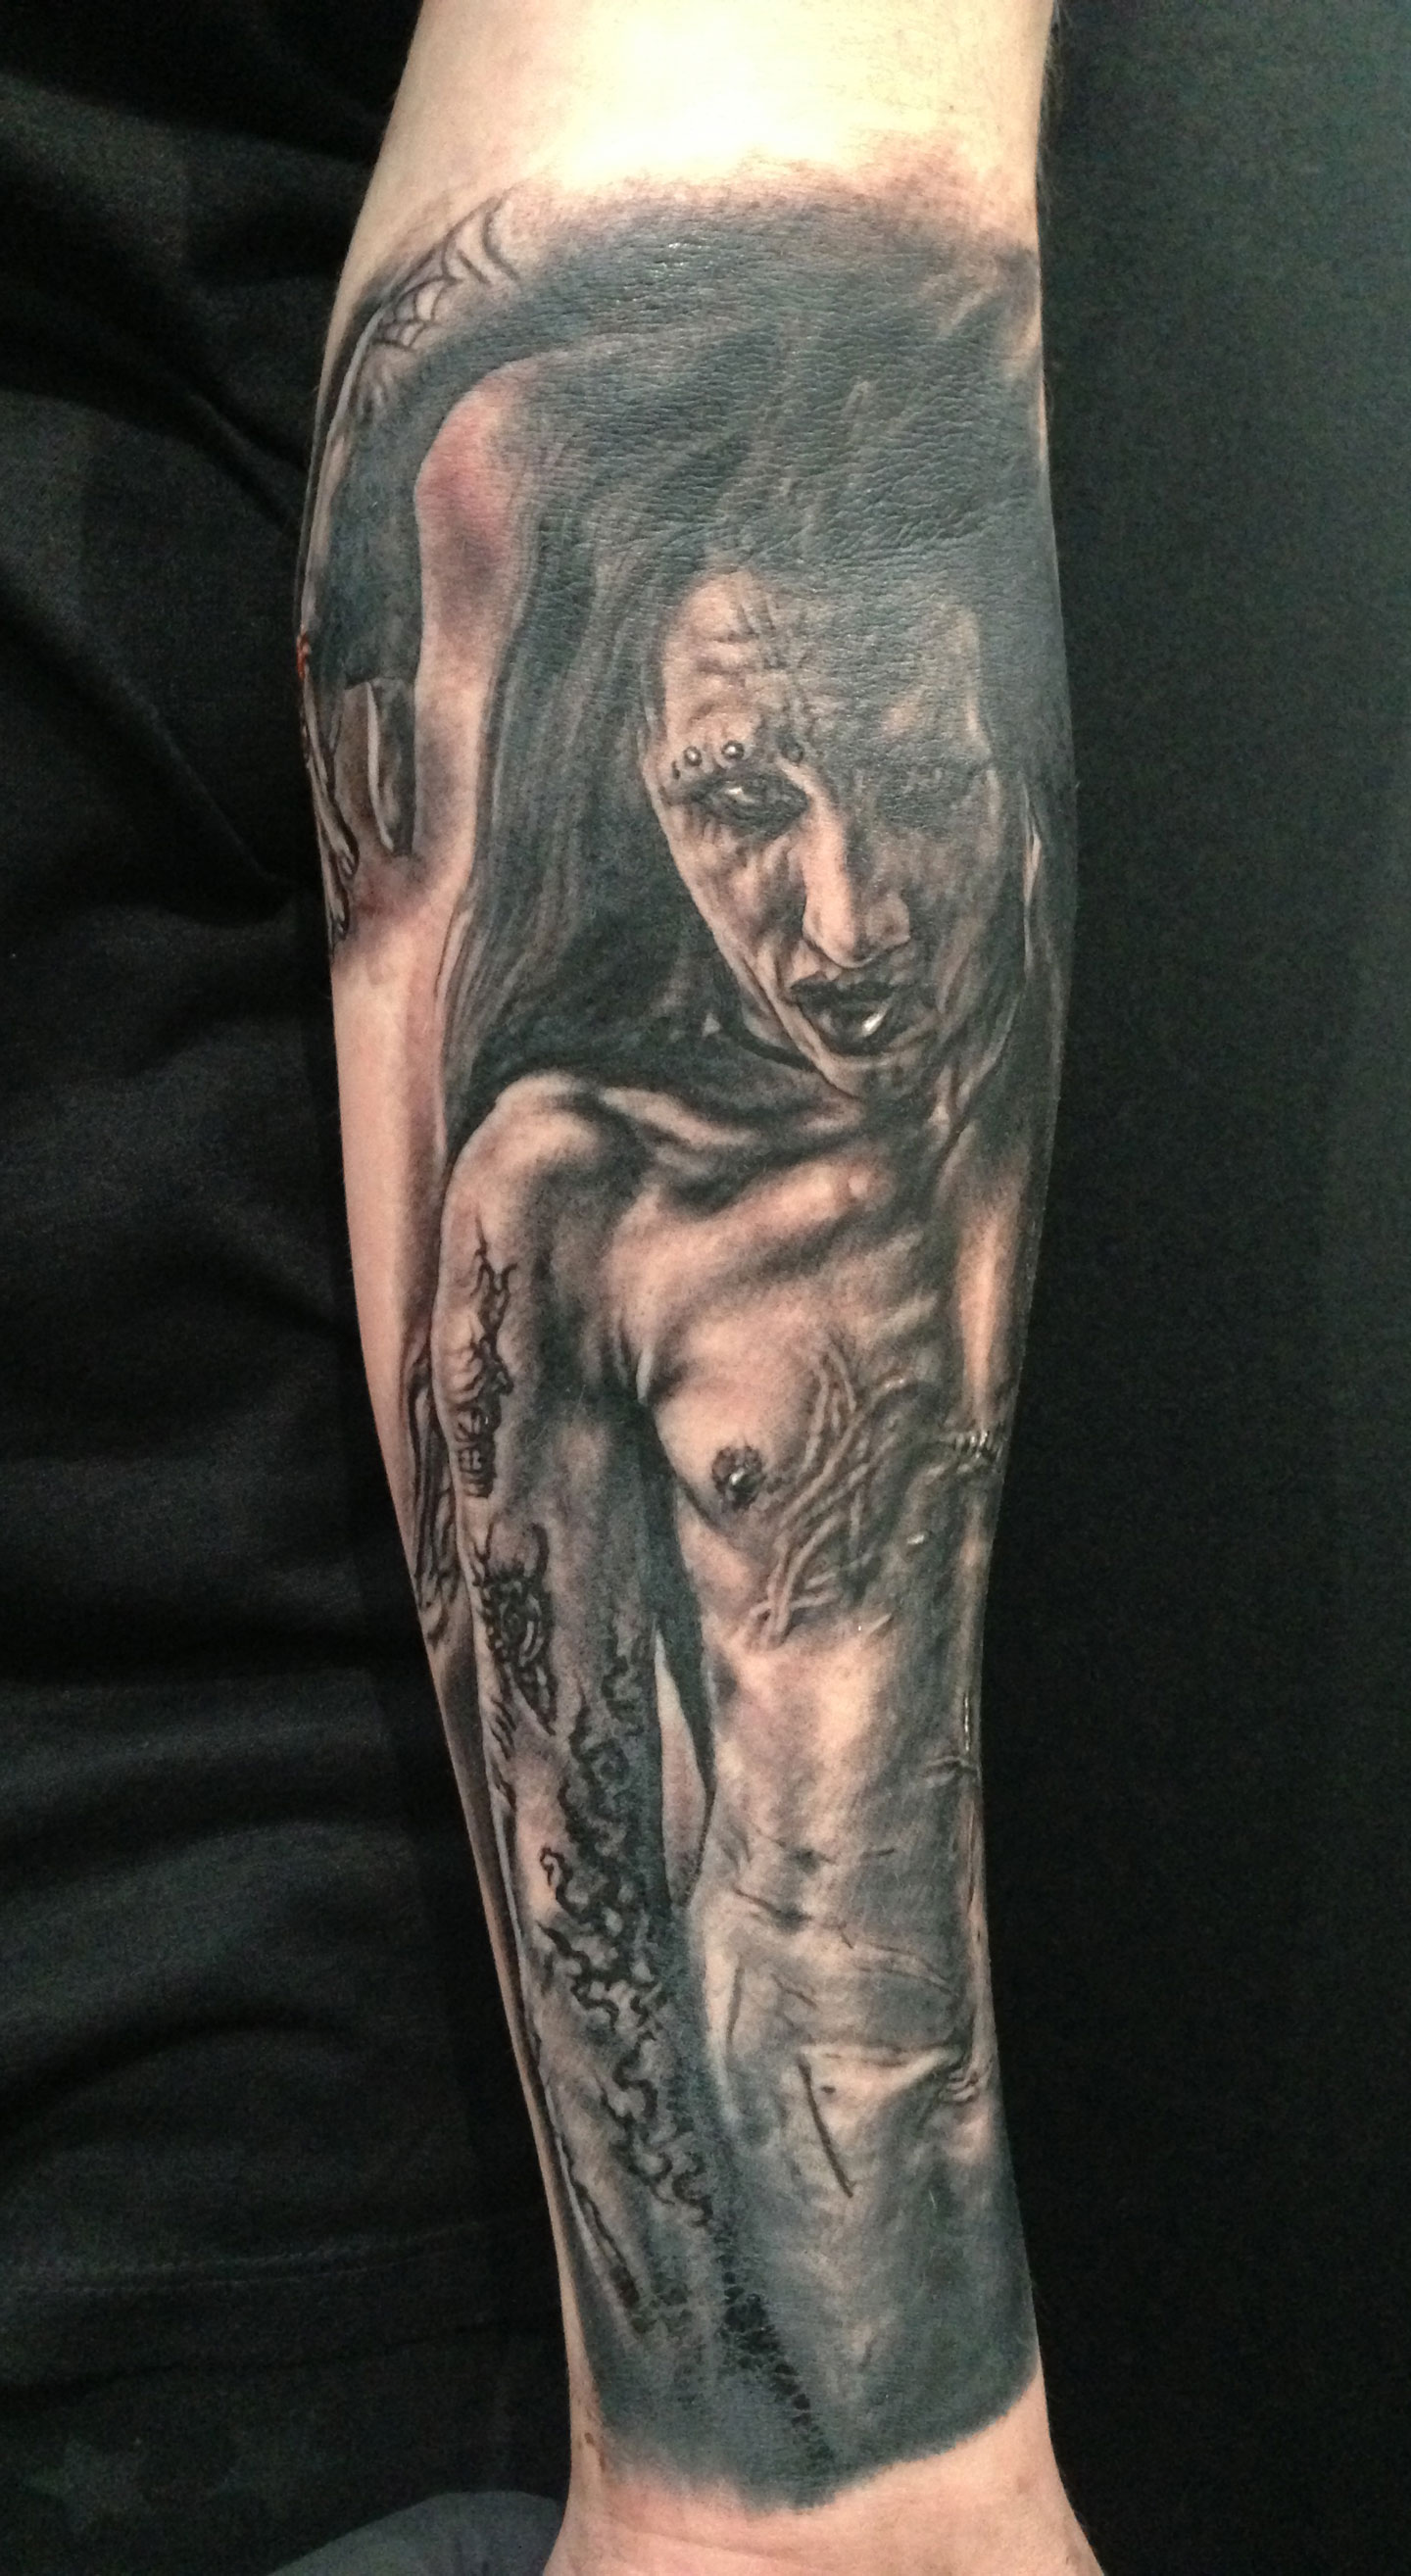 Black and Grey Marilyn Manson Portrait Tattoo, (fresh)